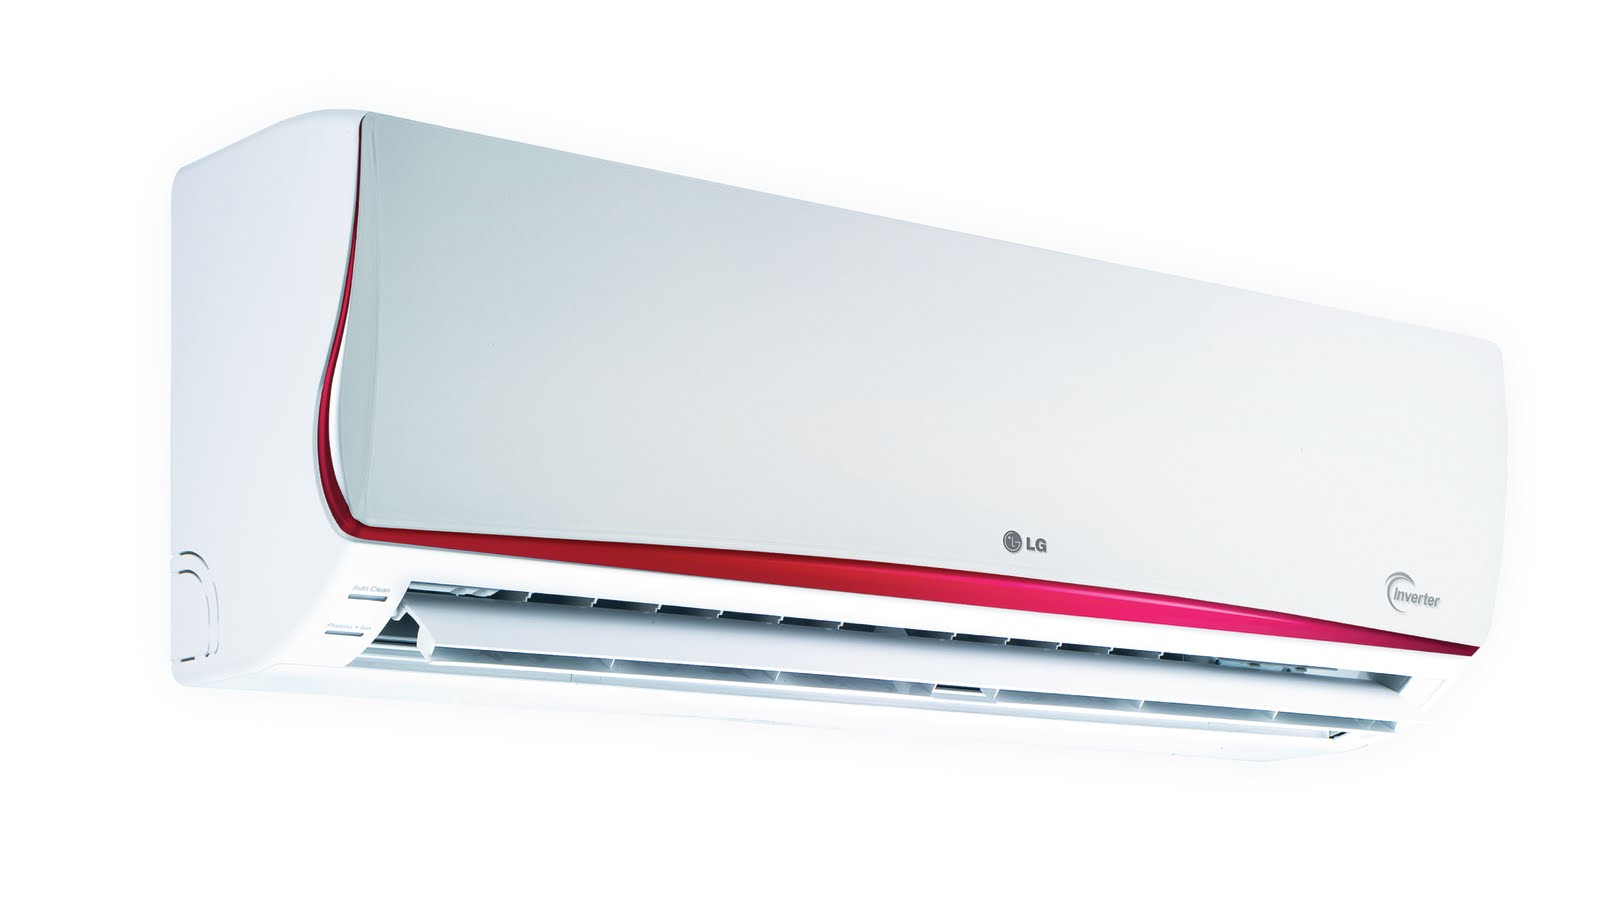 Ultra cool Fun: Top 10 Airconditioners (AC's) in India #B01B51